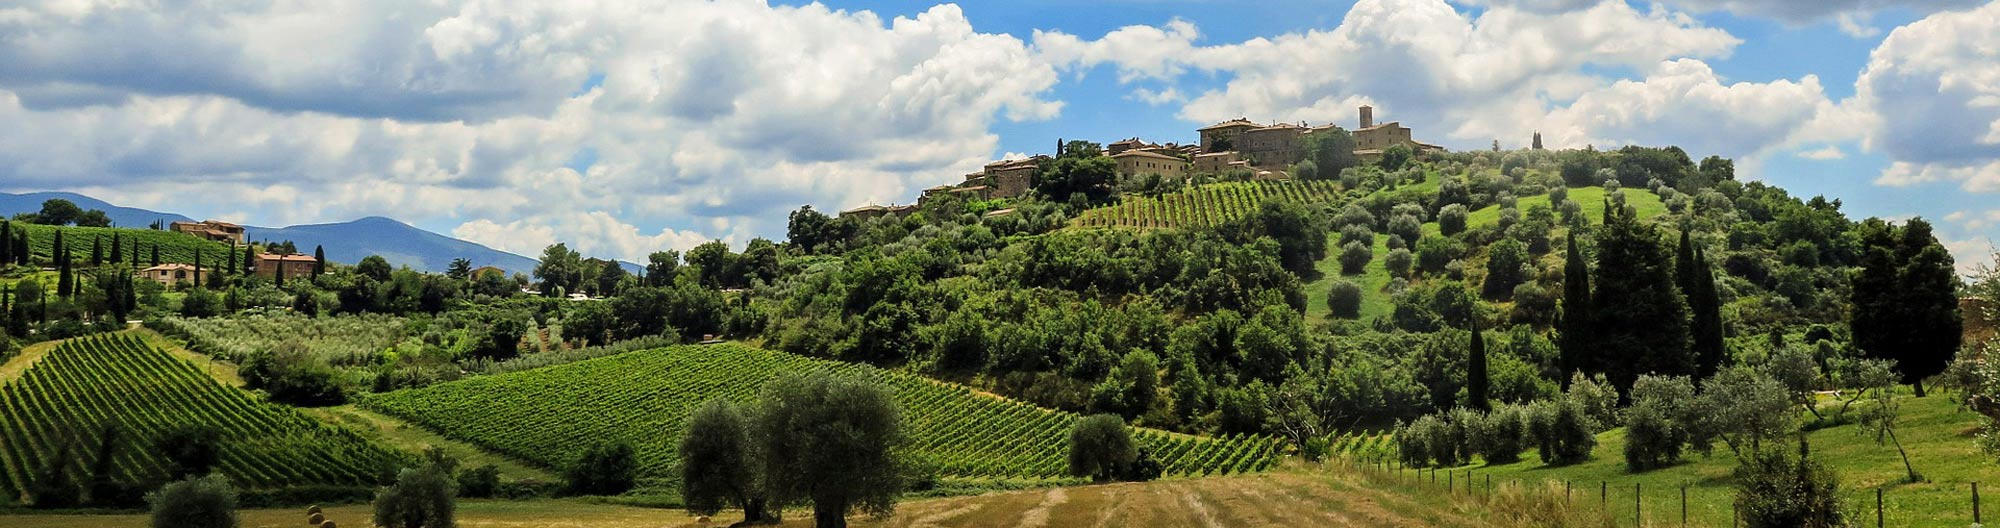 4-Day Self-Guided Wine Tasting Tour in Chianti, Italy